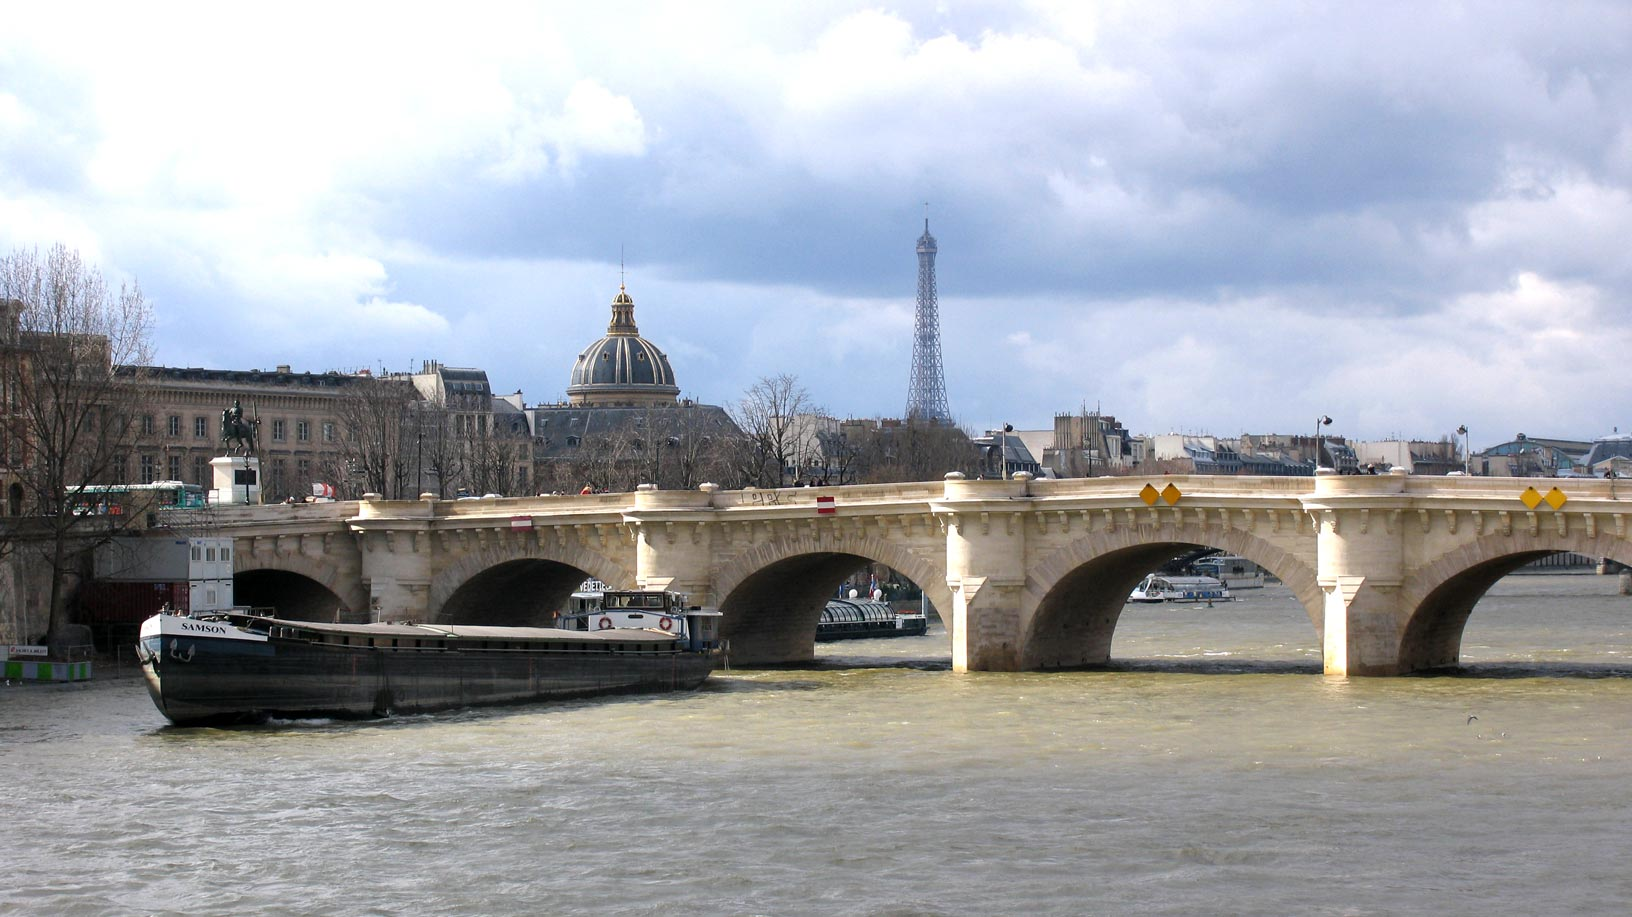 https://i0.wp.com/upload.wikimedia.org/wikipedia/commons/c/cf/Pont-Neuf-Partiel.jpg